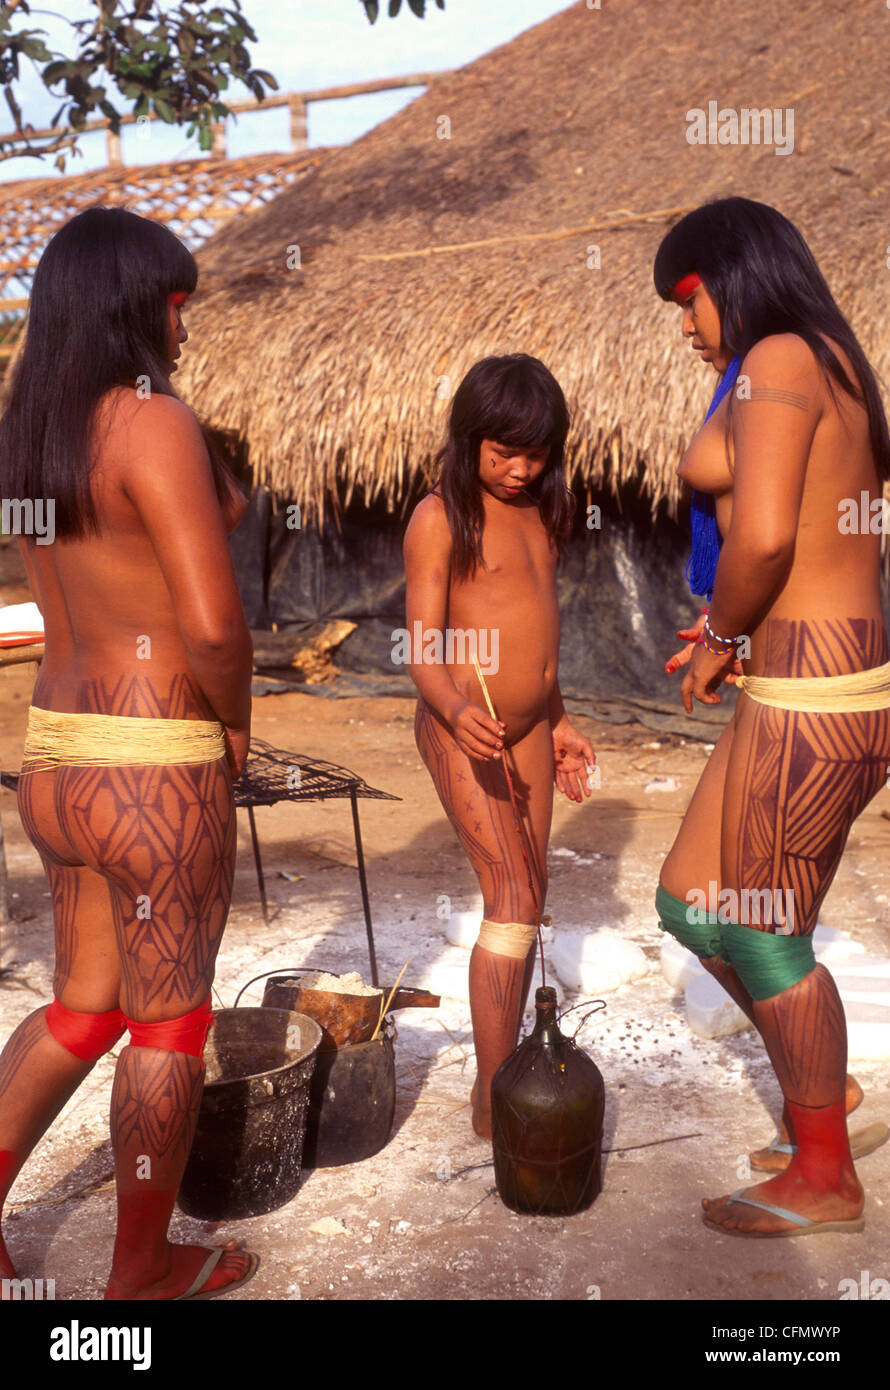 Remarkable Amazon tribe with shaved pussy opinion the